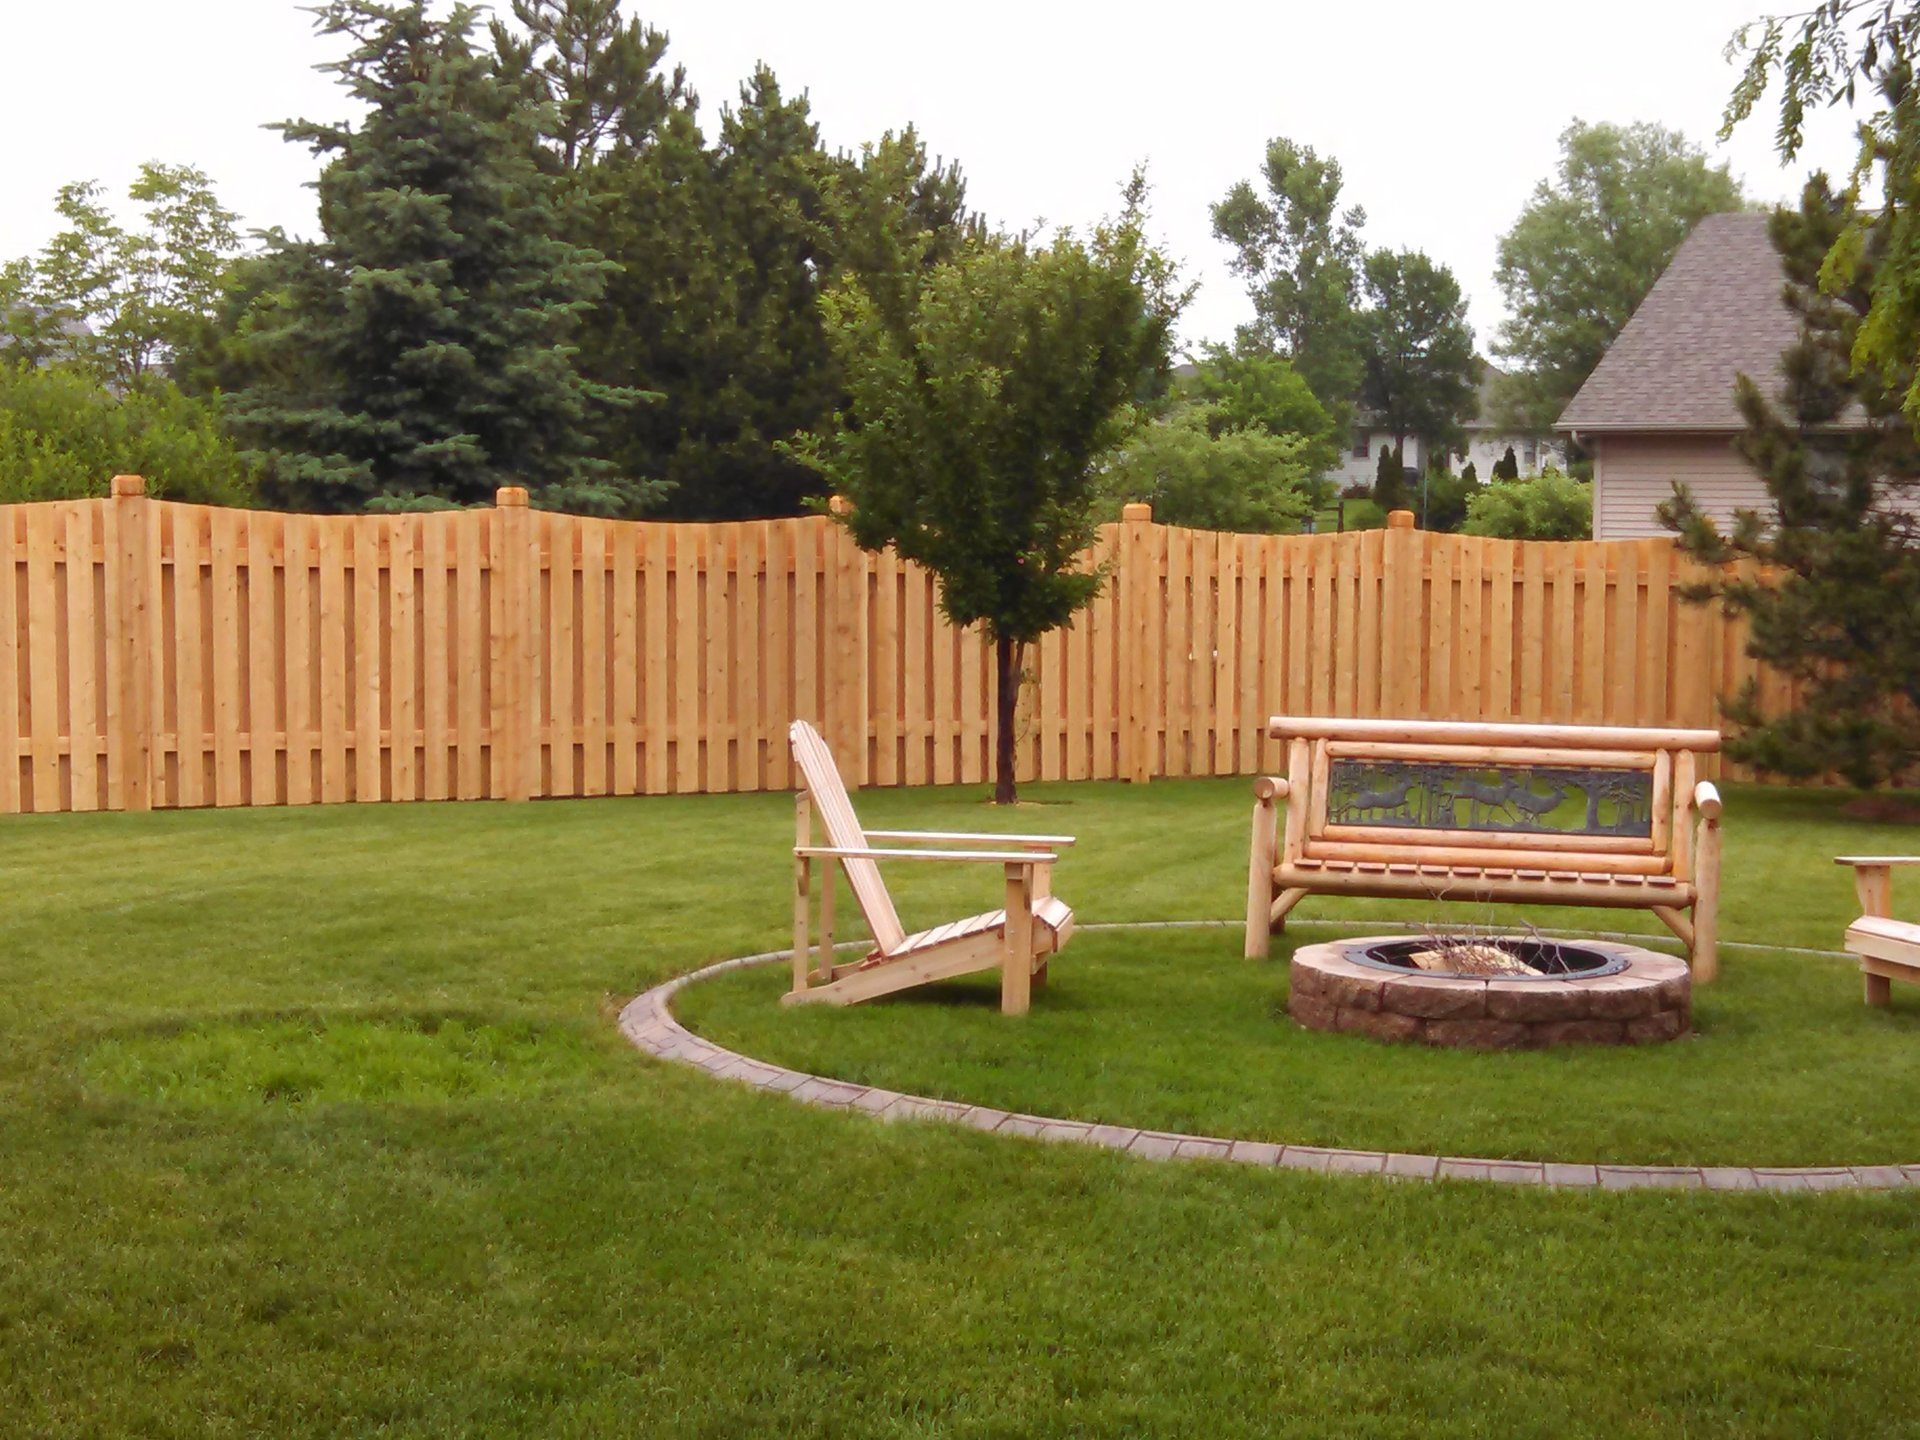 Rammer Fence Inc image 3